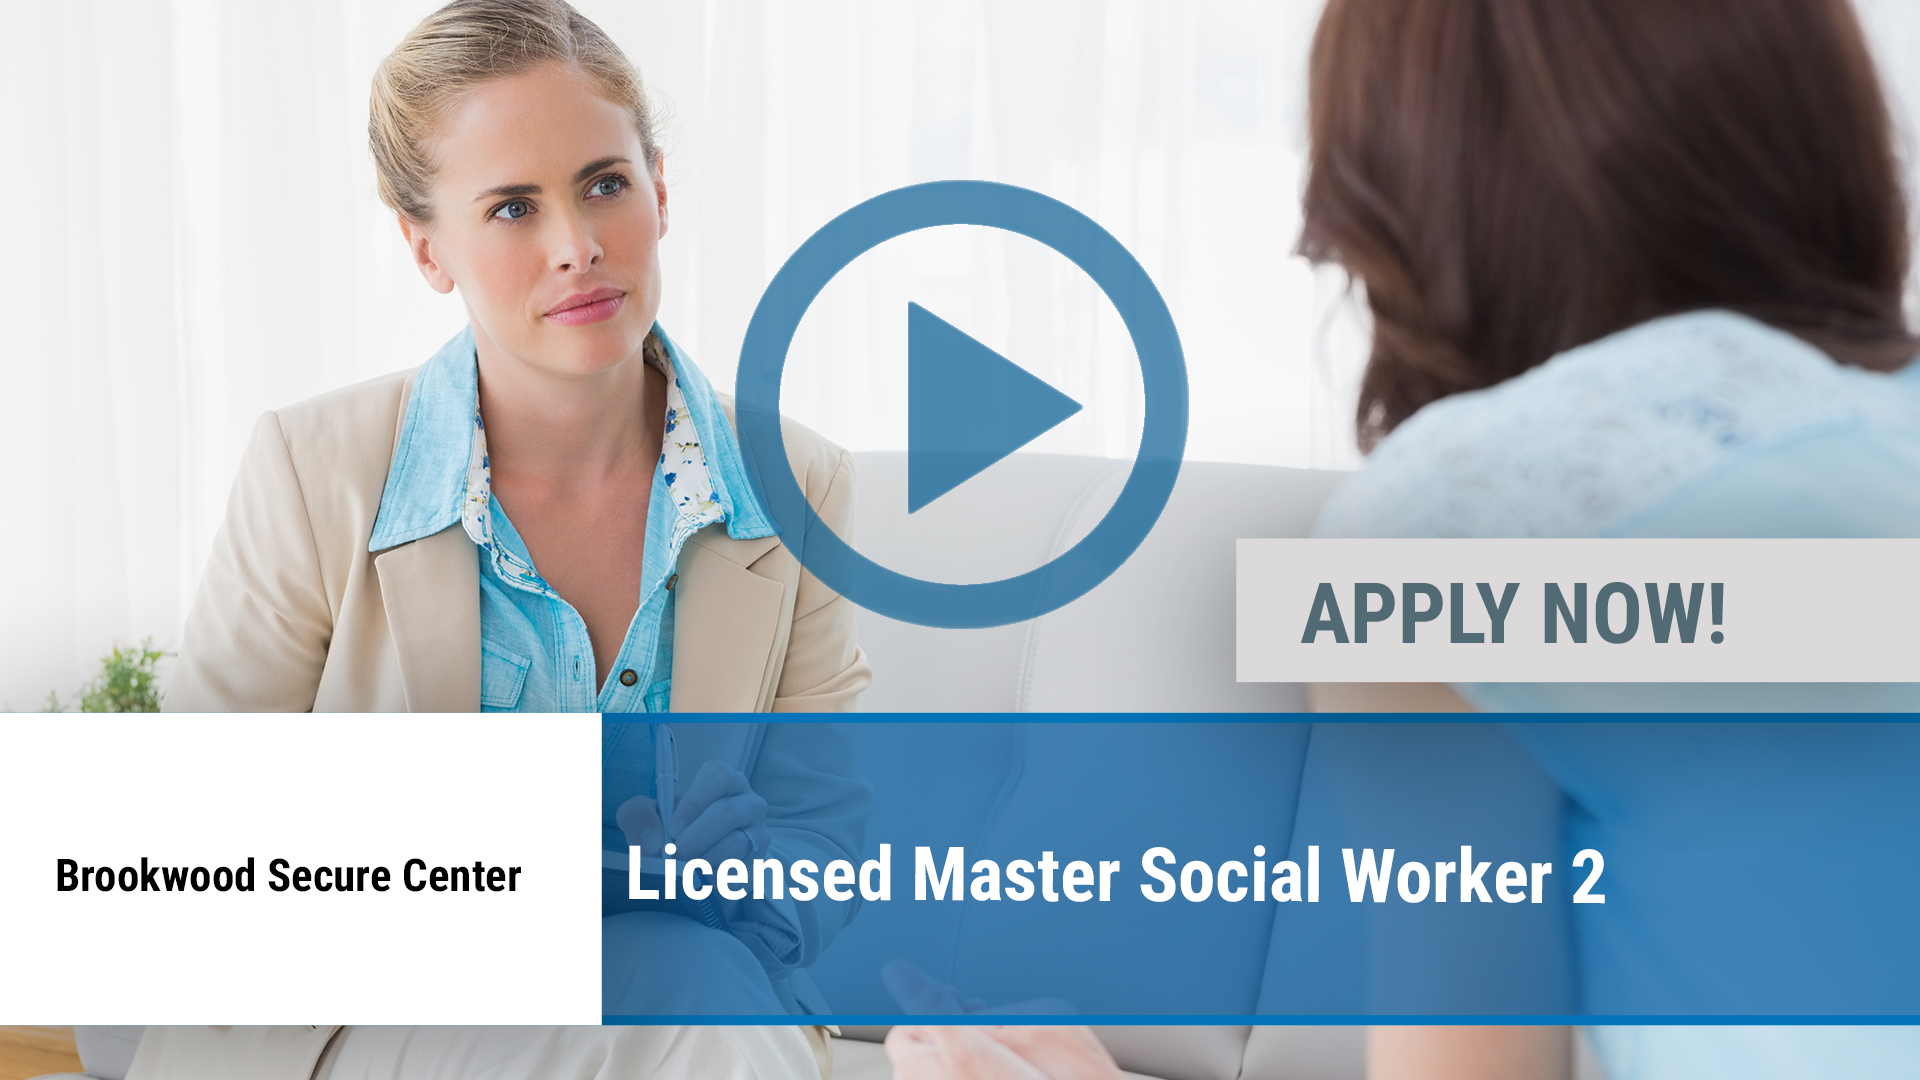 Watch our careers video for available job opening Licensed Master Social Worker 2 in Claverack, NY